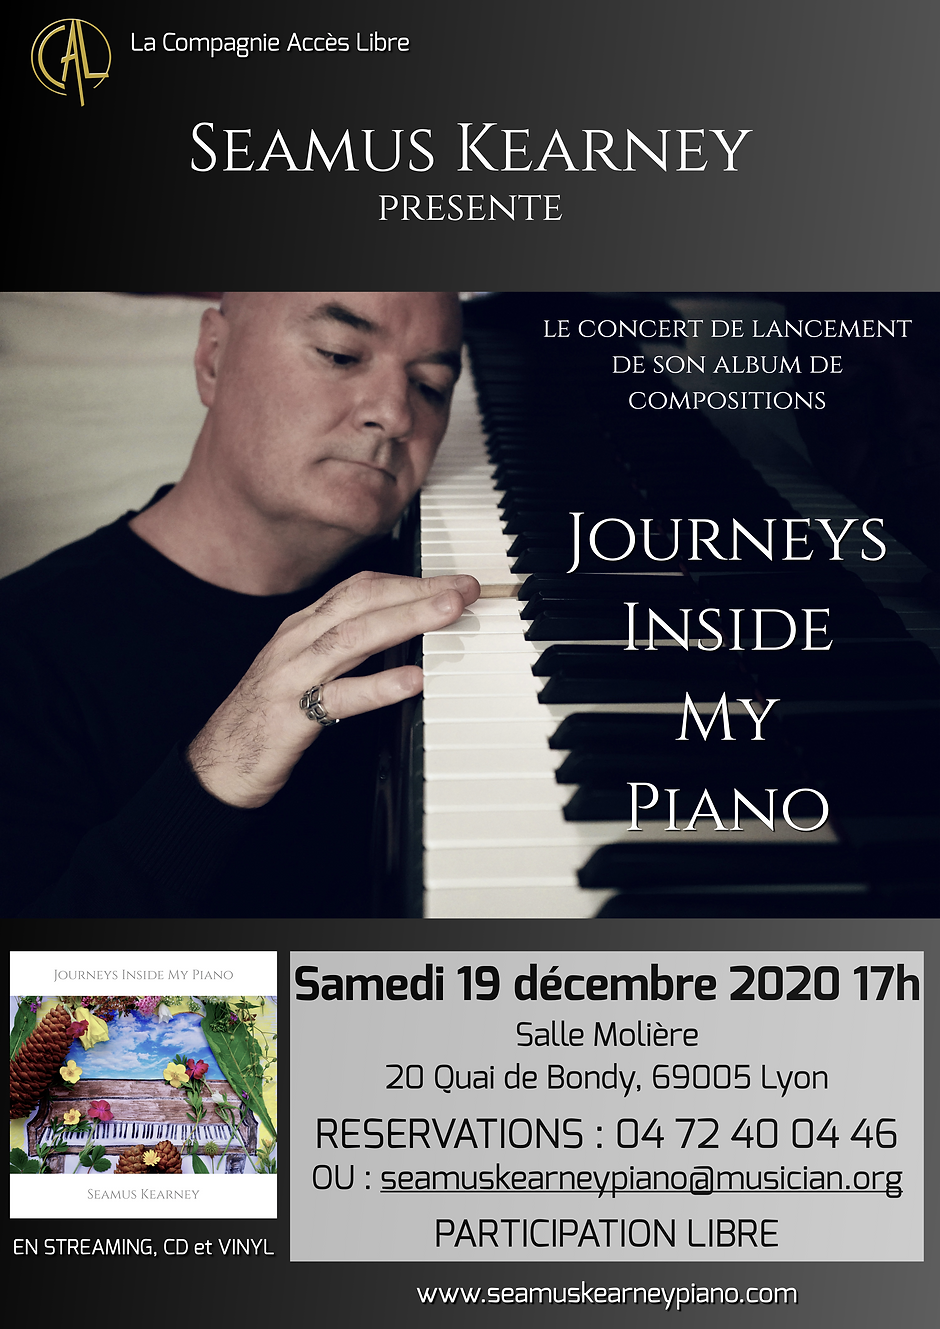 A poster advertising the piano concert of Seamus Kearney: Salle Molière in Lyon, 19 December 2020 at 5pm. The concert marks the launch of his album of original compositions, Journeys Inside My Piano